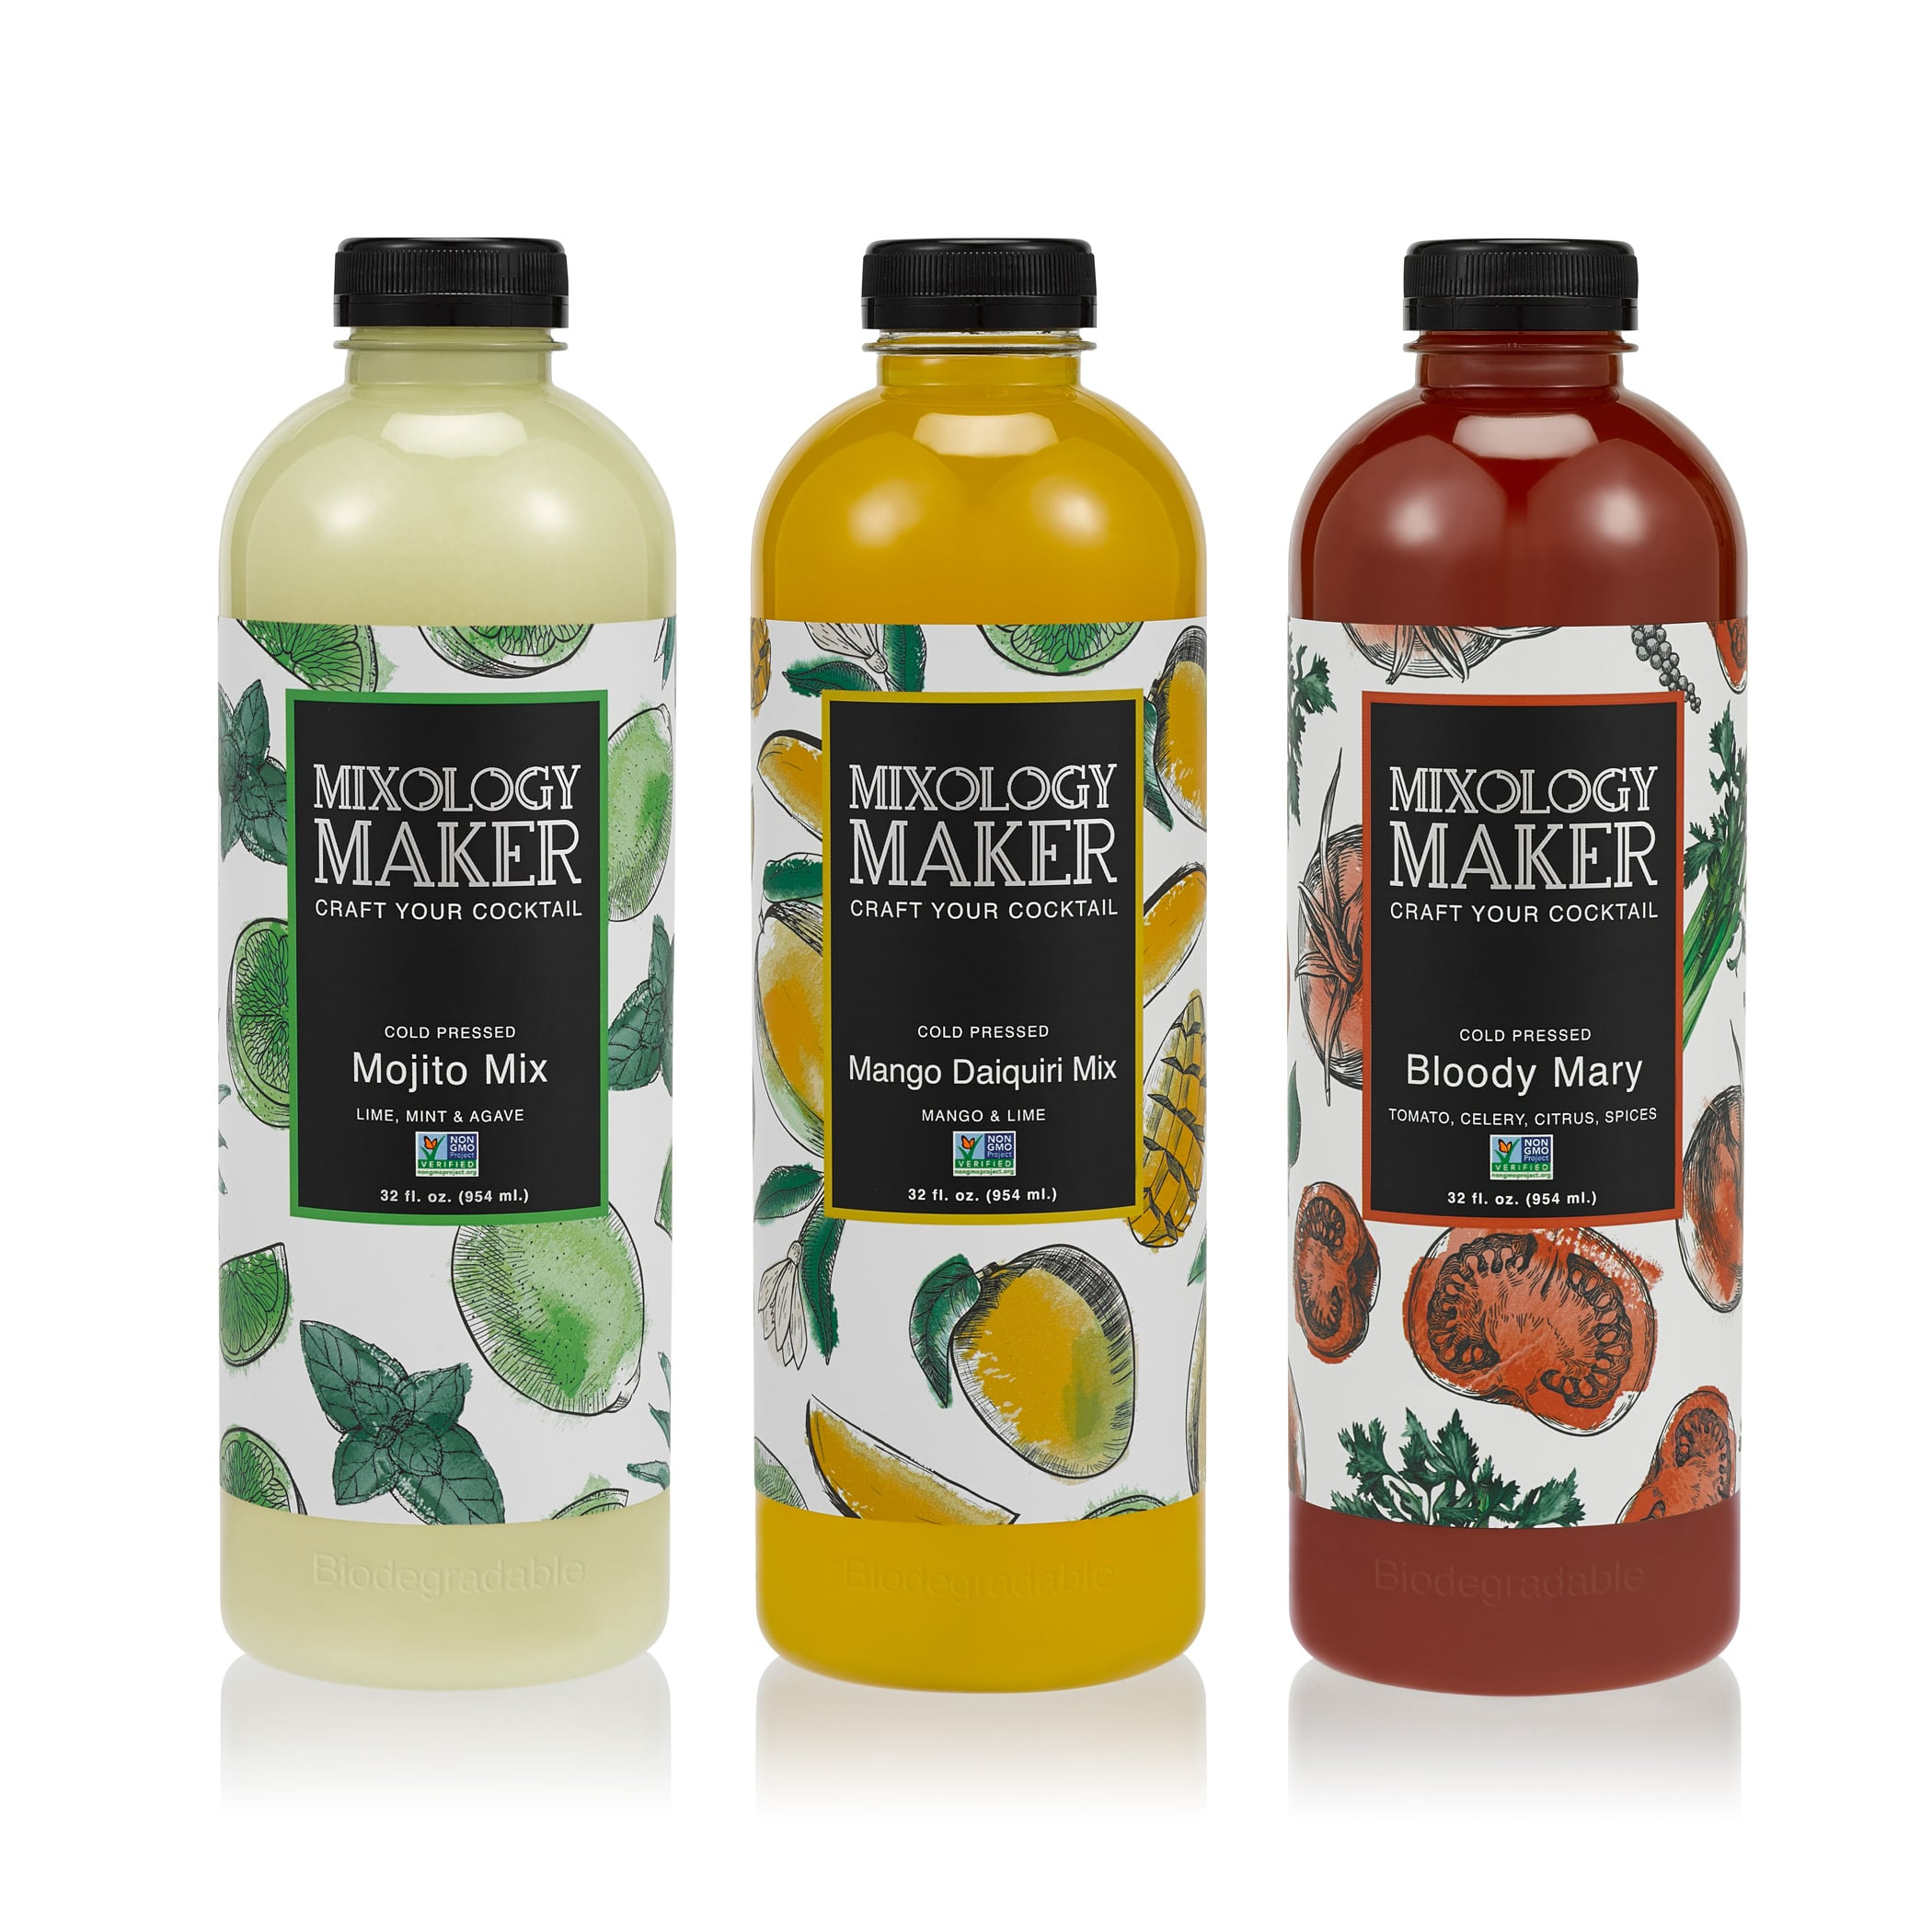 Mixology Maker package product design showing row of 3 flavors with sleek logo and hand drawn fruits on each label.